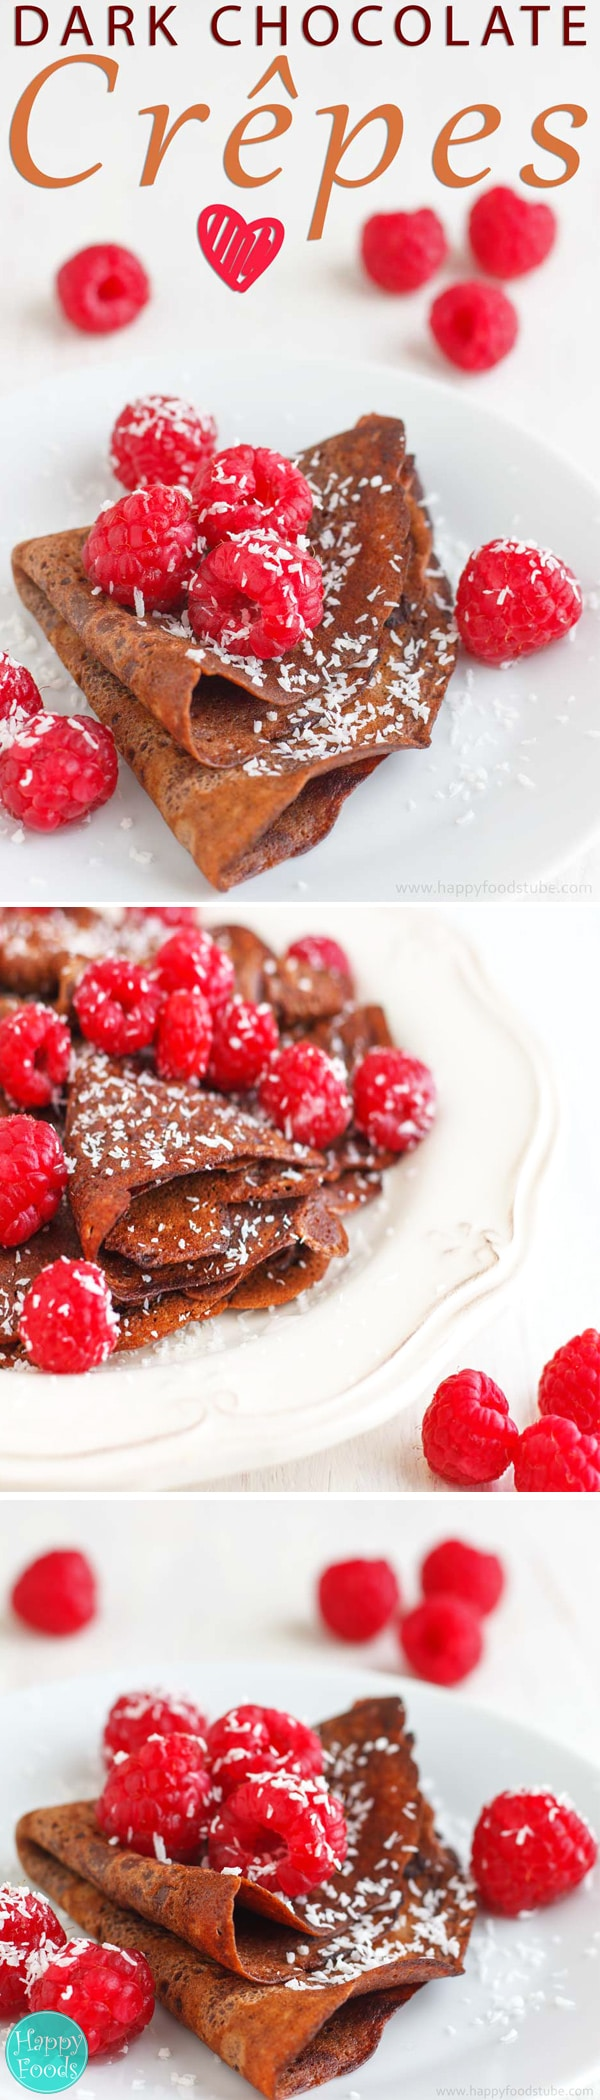 Delicious Dark Chocolate Crepes with Raspberries. Easy recipe for homemade crepes uses dark chocolate batter for the extra chocolate flavor. #chocolate #crepes #homemade #recipes #pancakes #valentinesday #pancakeday